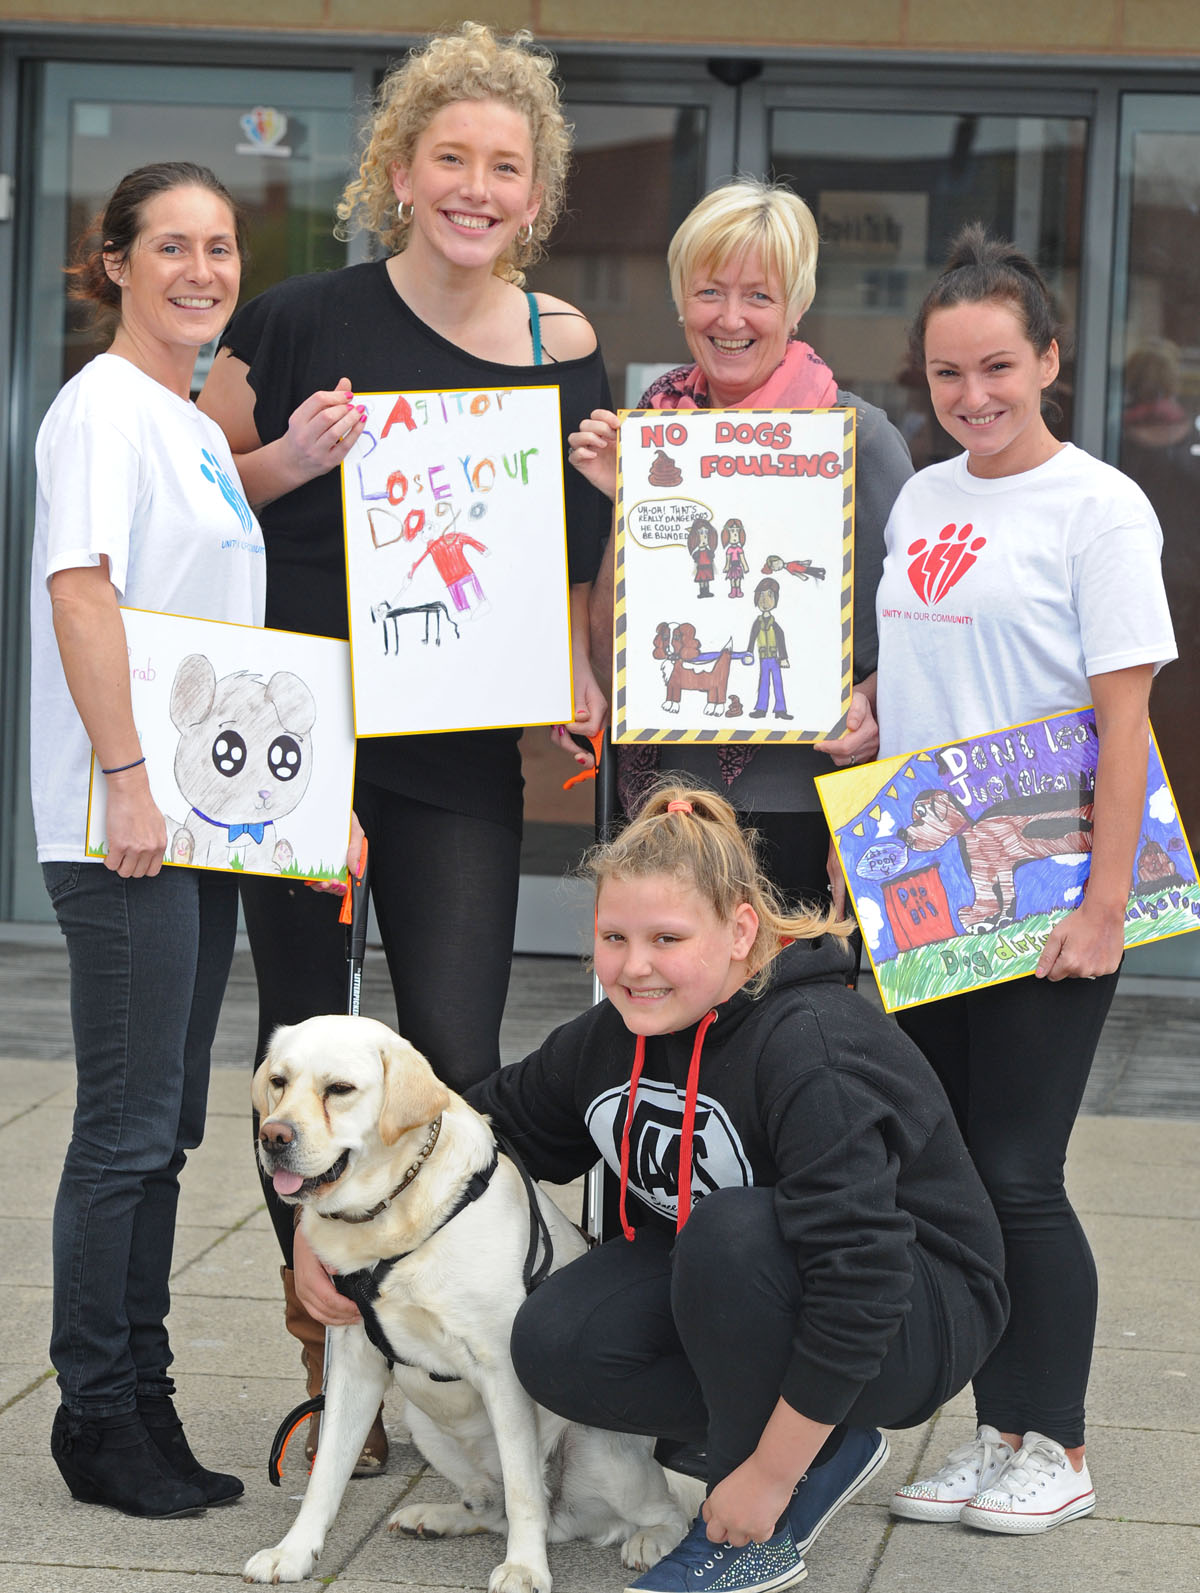 Jenni Jones, Sammy Barker, Sandra Camello, Sasha Mathias and Tiffany Barnes with Spencer the dog with some of the posters designed by schoolchildren.